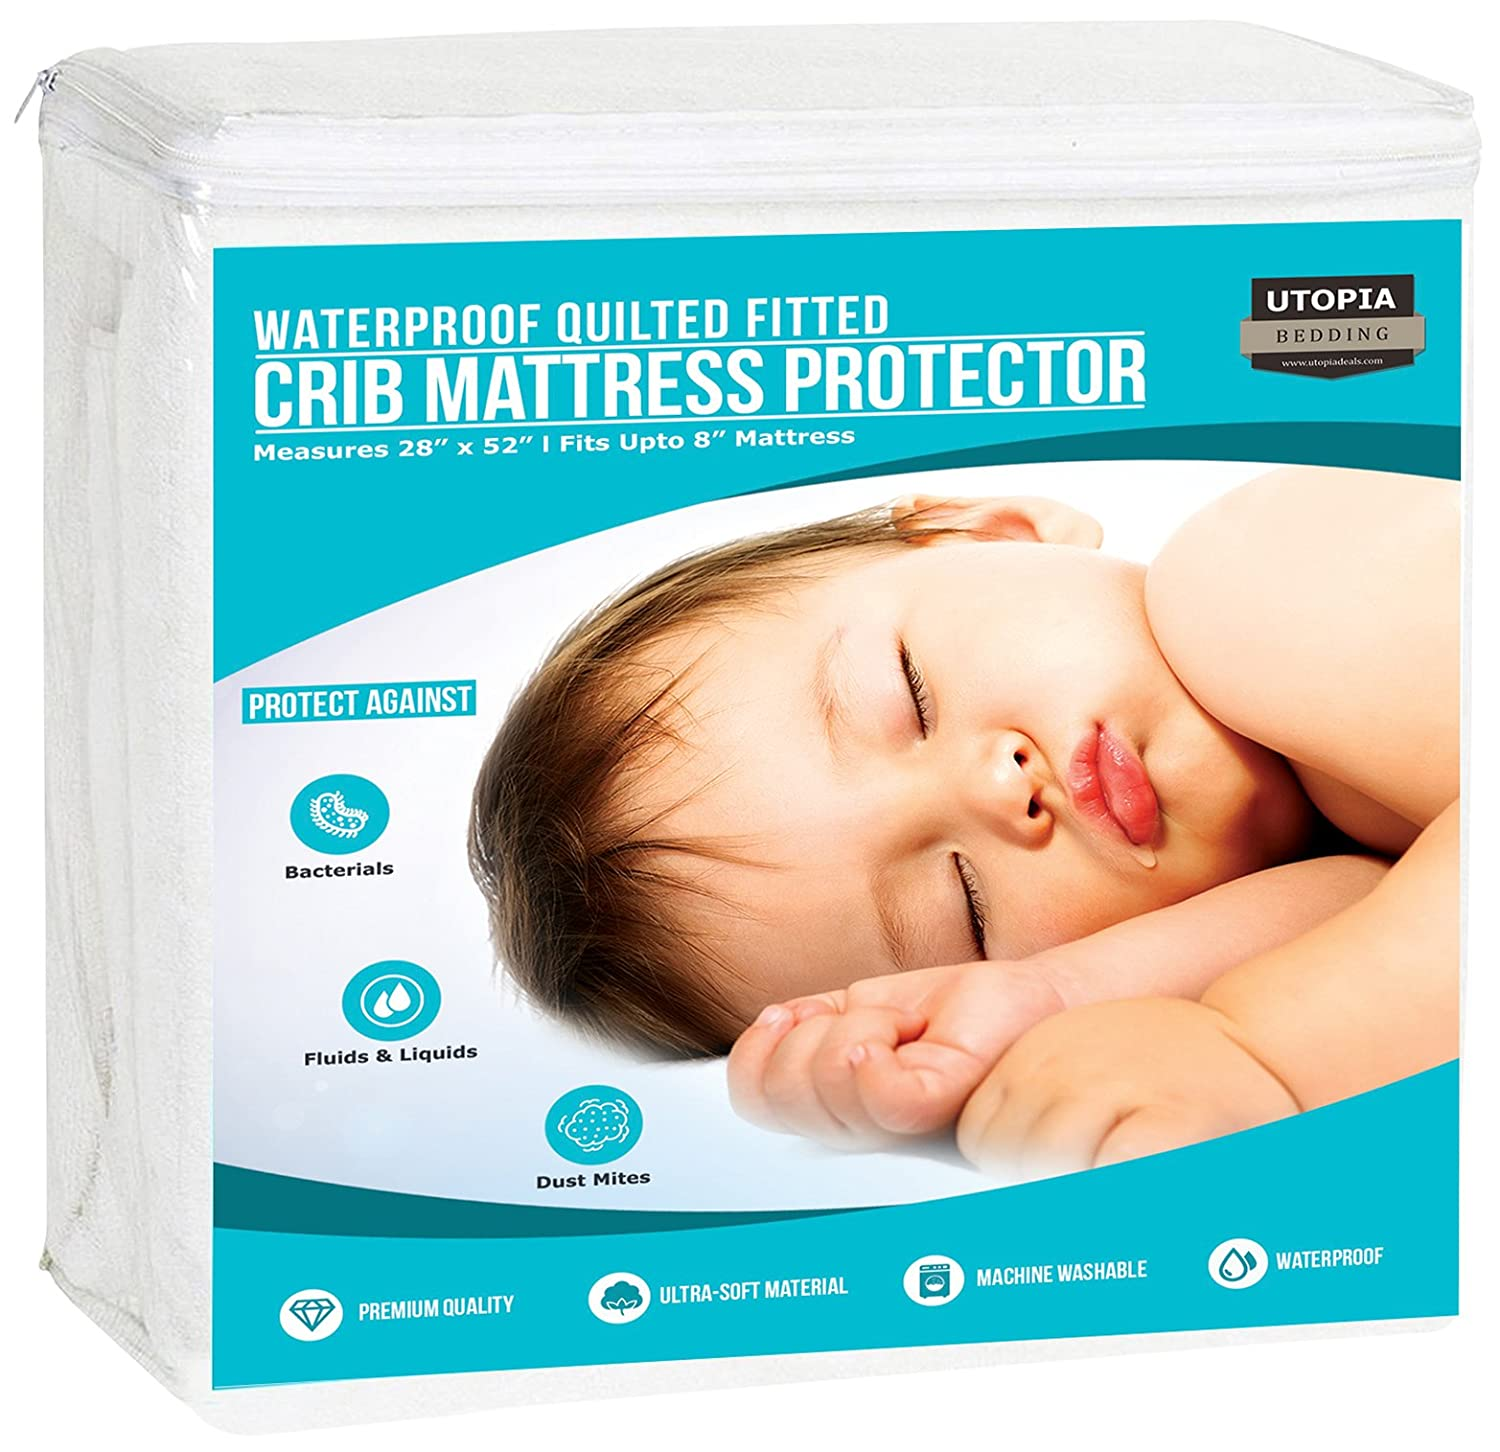 Utopia Bedding Waterproof Crib Mattress Protector - Breathable Mattress Cover - Hypoallergenic Quilted Crib Fitted - Cradle Mattress Pad (Pack of 2) UB0024